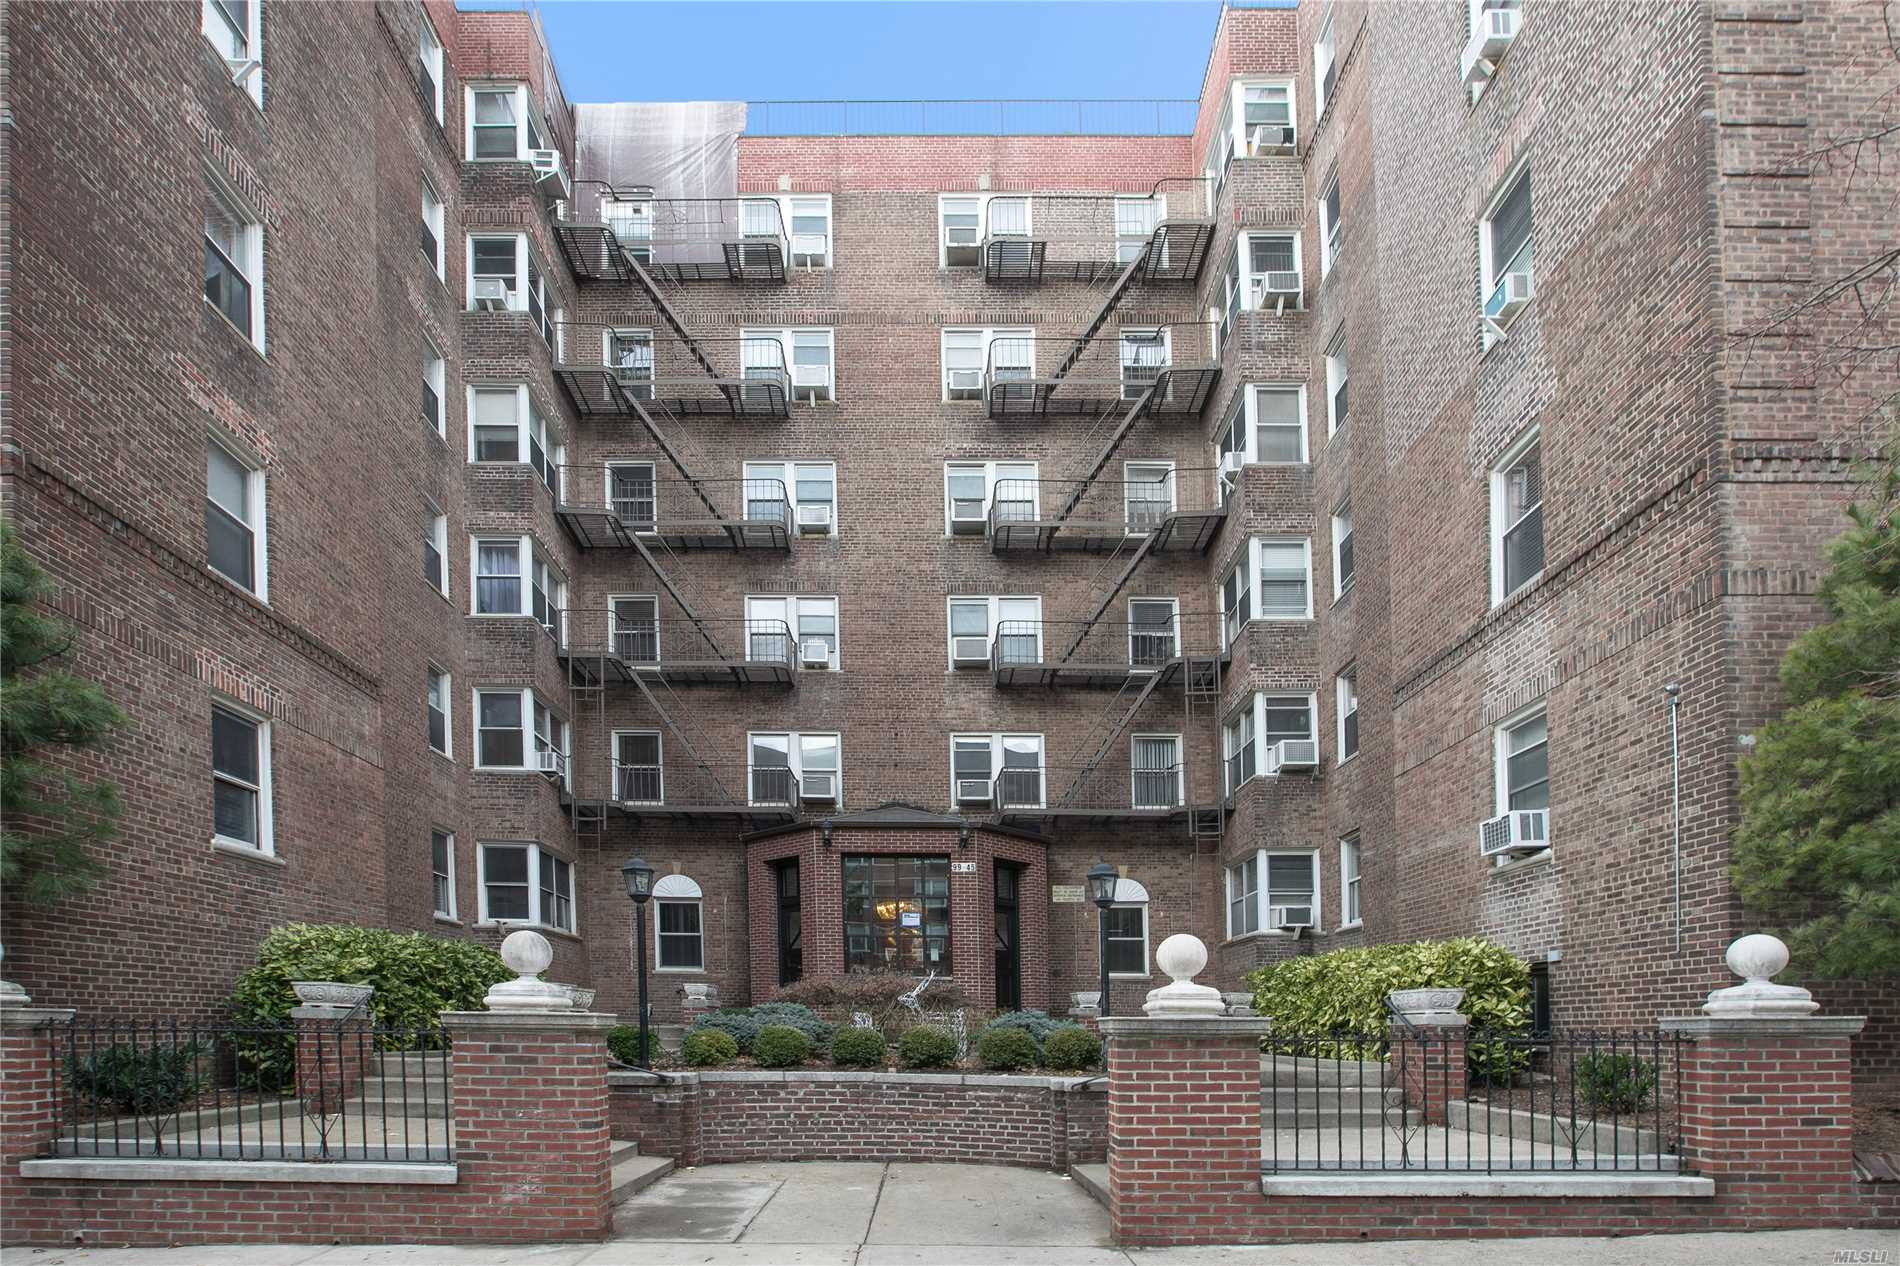 99-45 67 Rd, 116 - Forest Hills, New York